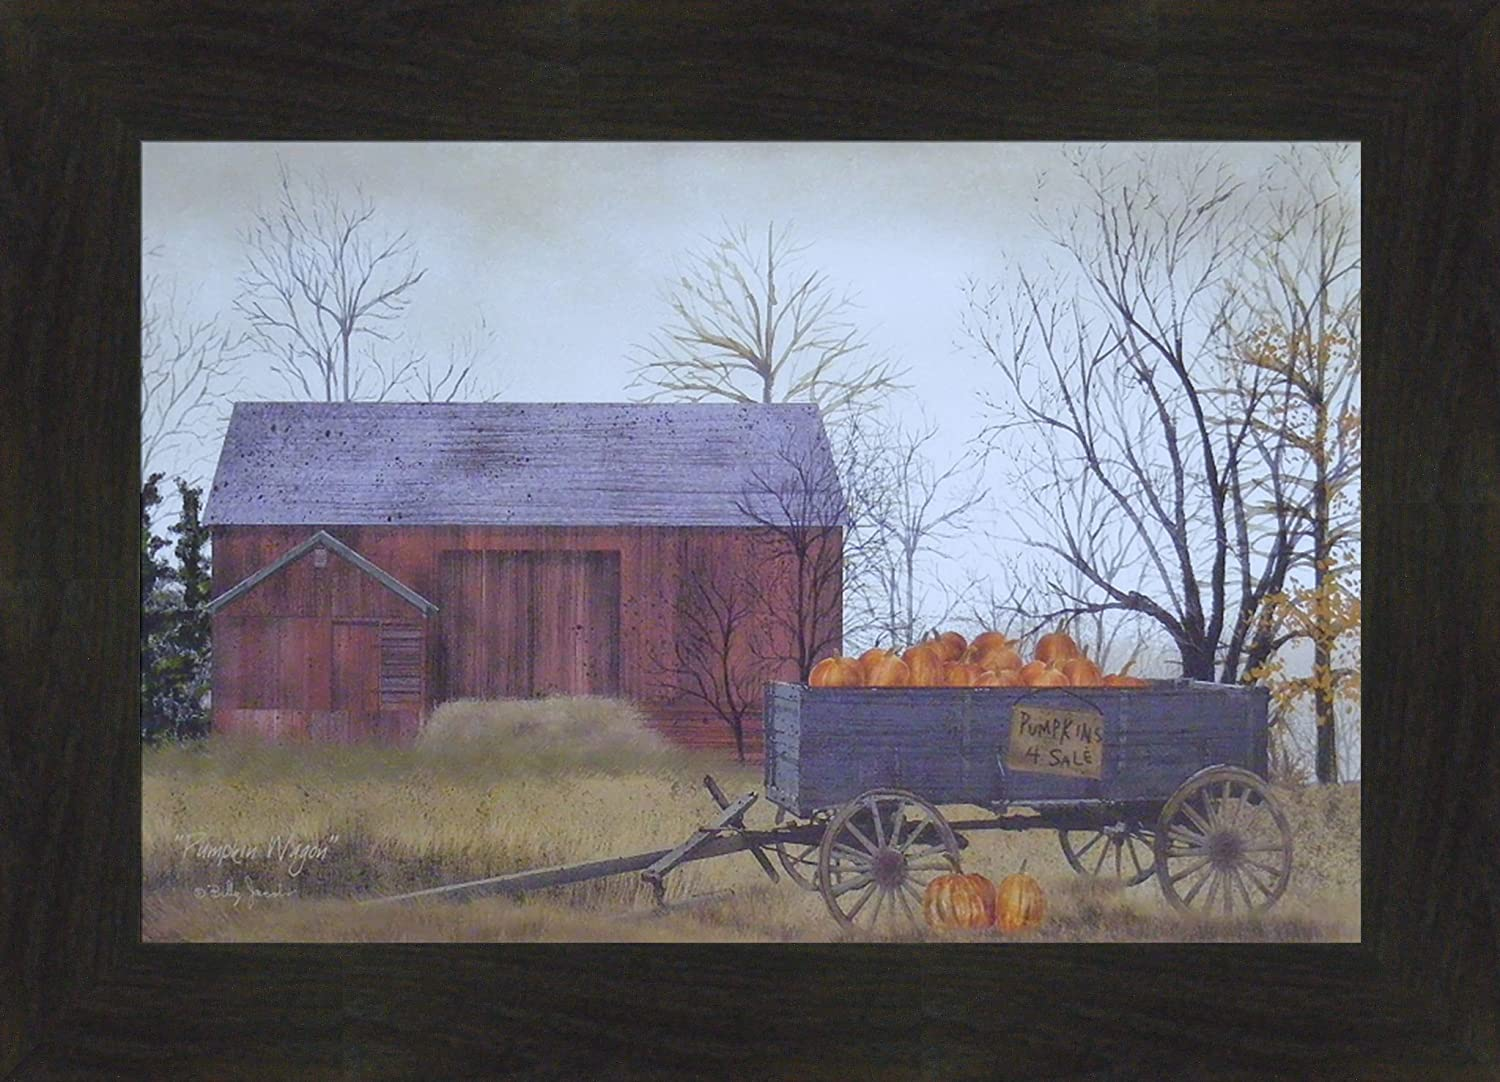 Home Cabin Décor Pumpkin Wagon By Billy Jacobs 15x21 Pumpkins For Sale Red Barn Wagon Fall Autumn Crops Primitive Folk Art Print Framed Picture